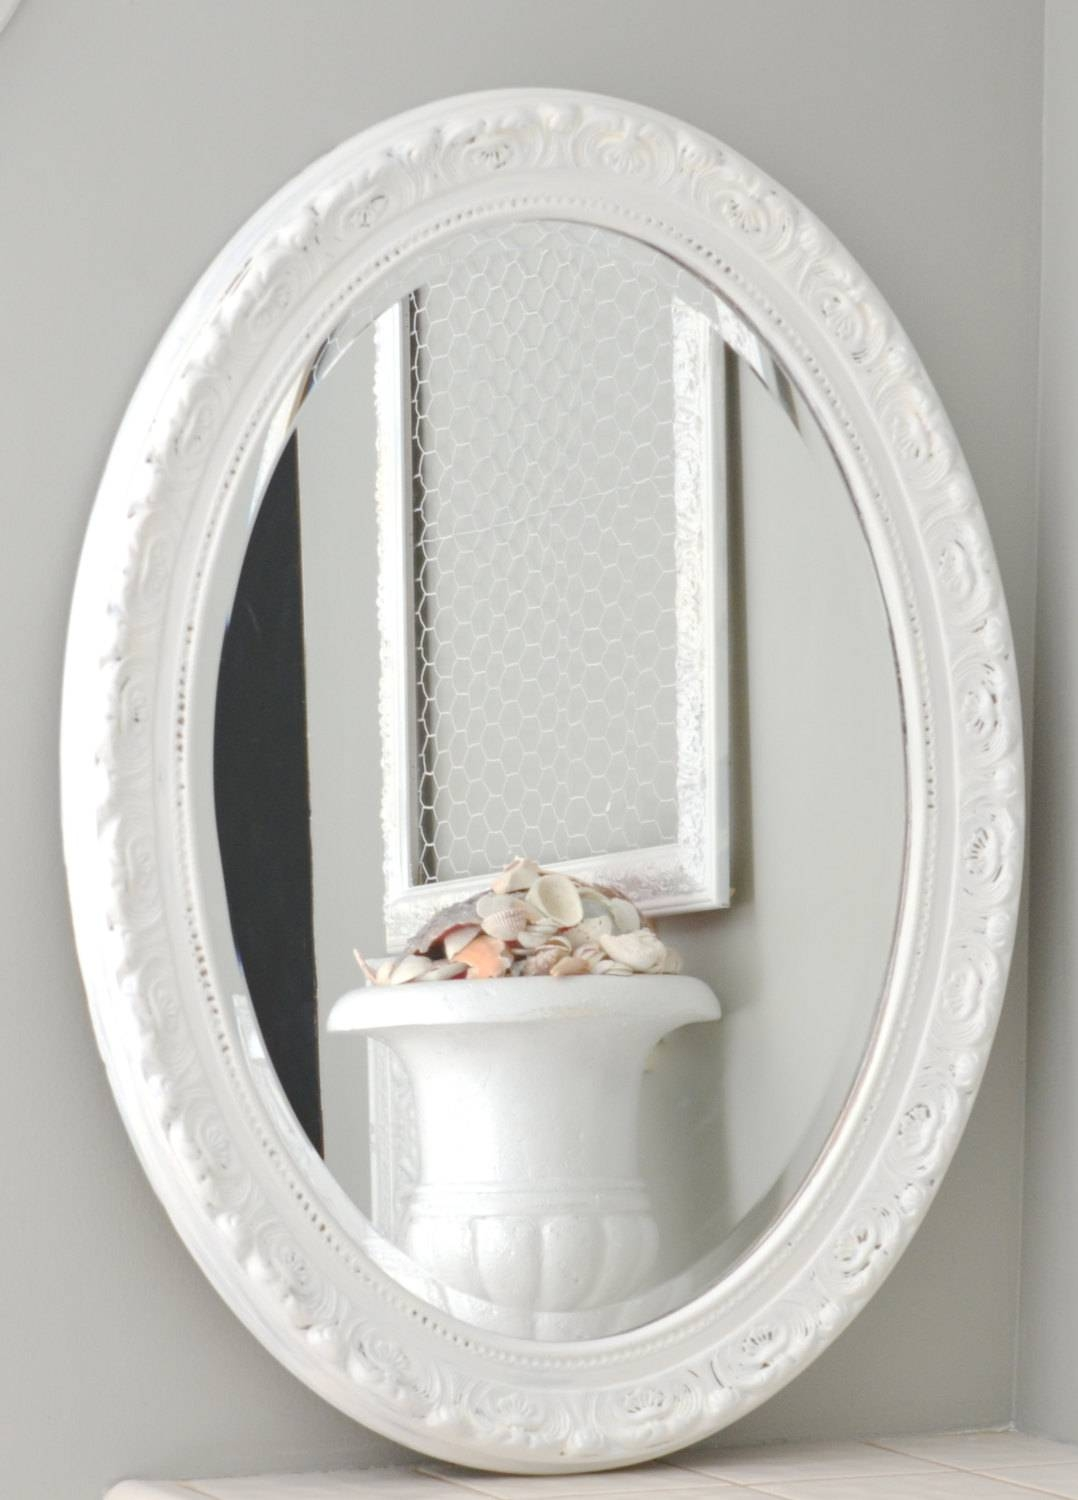 Sold Shabby Chic White Oval Mirror Large Oval Shabby Chic Throughout Oval Shabby Chic Mirrors (View 2 of 25)